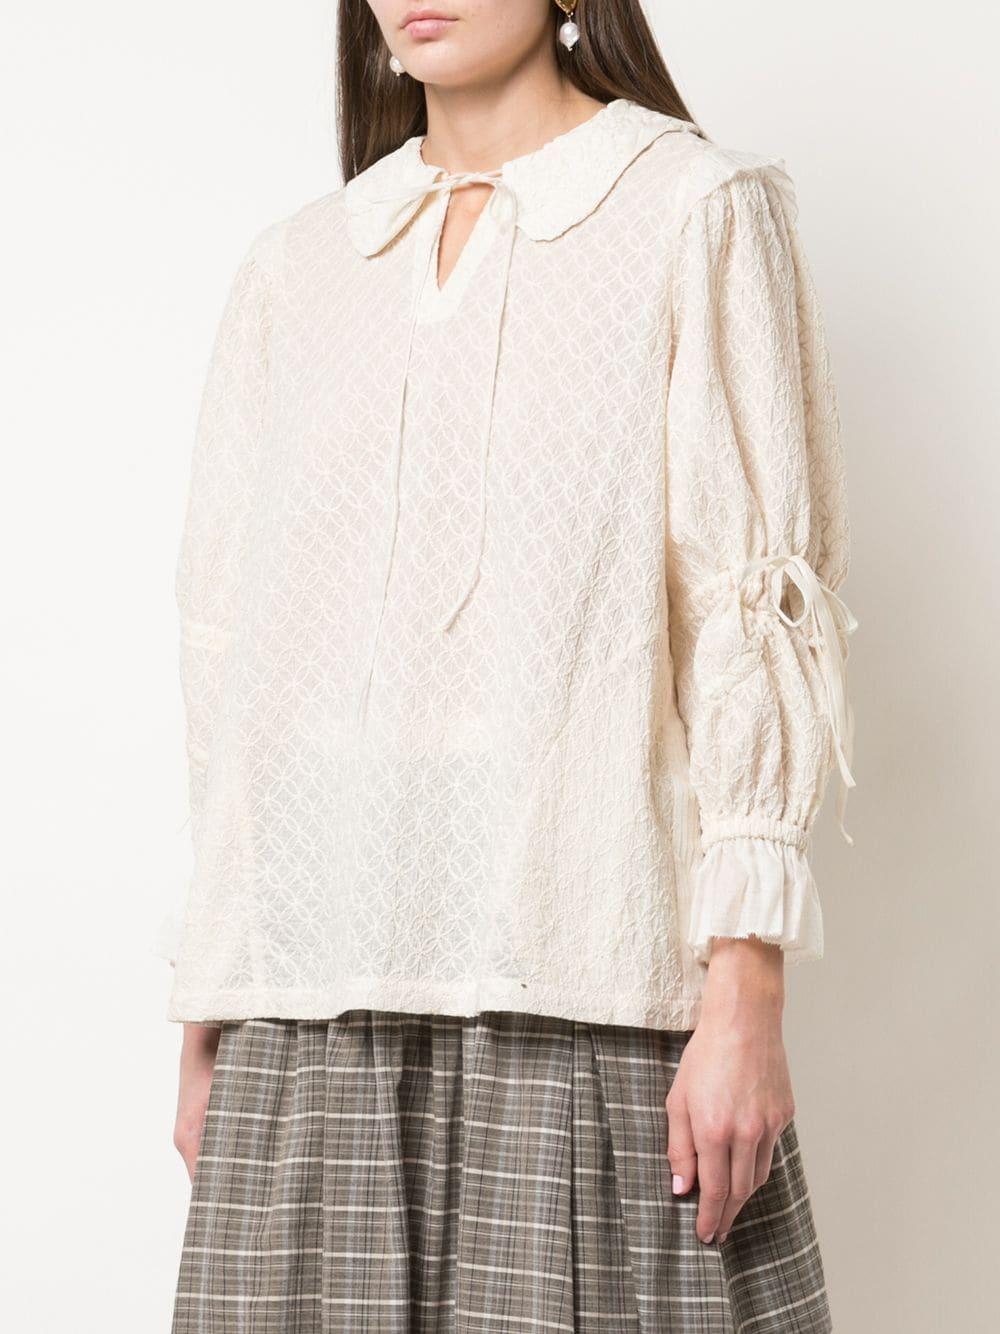 RENLI SU WOMEN EMBRIODERED BLOUSE